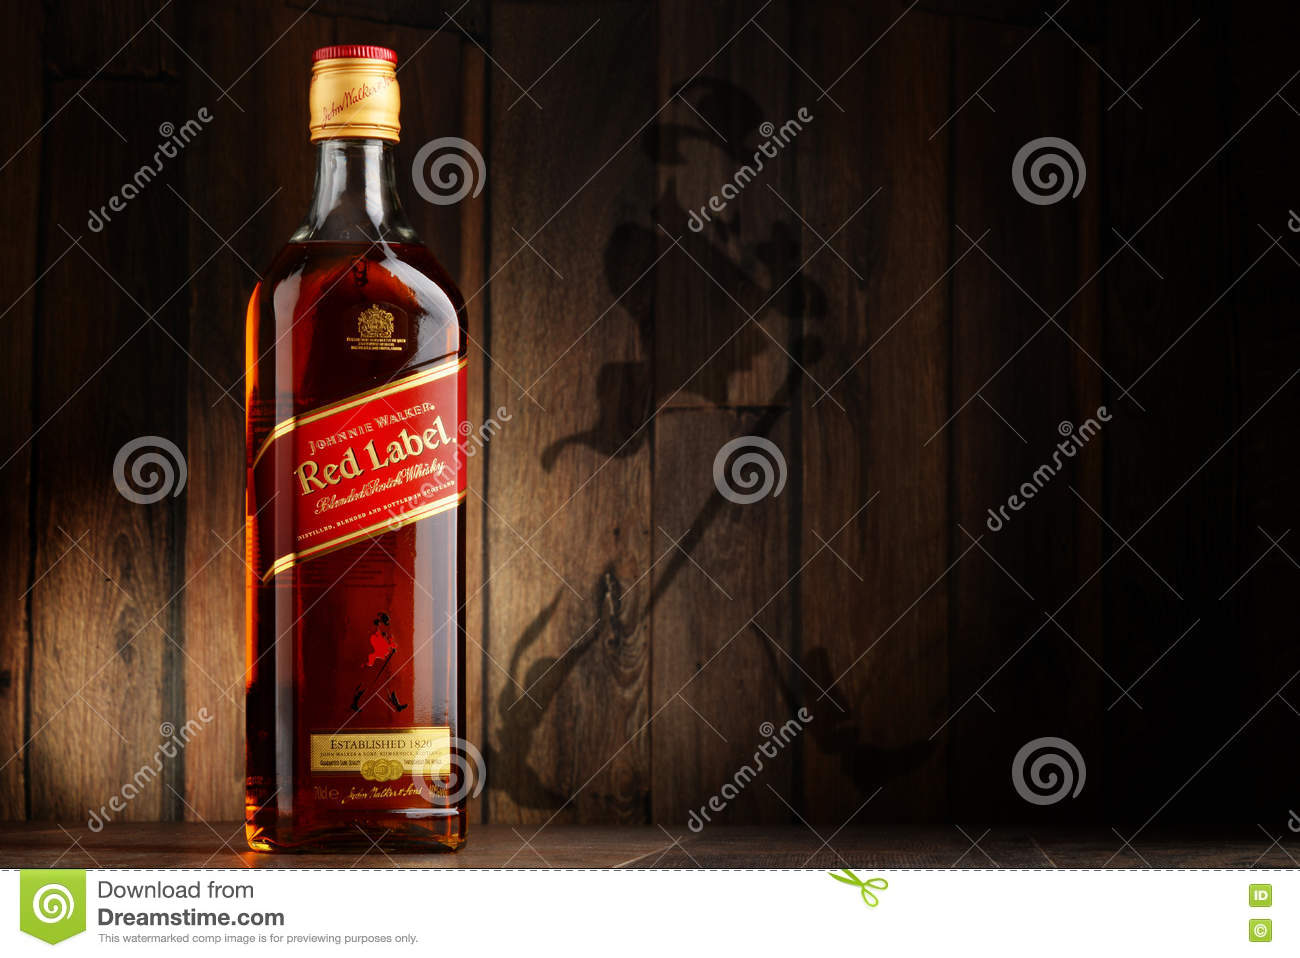 Bottle Of Johnnie Walker Scotch Whisky Editorial Stock Photo Image